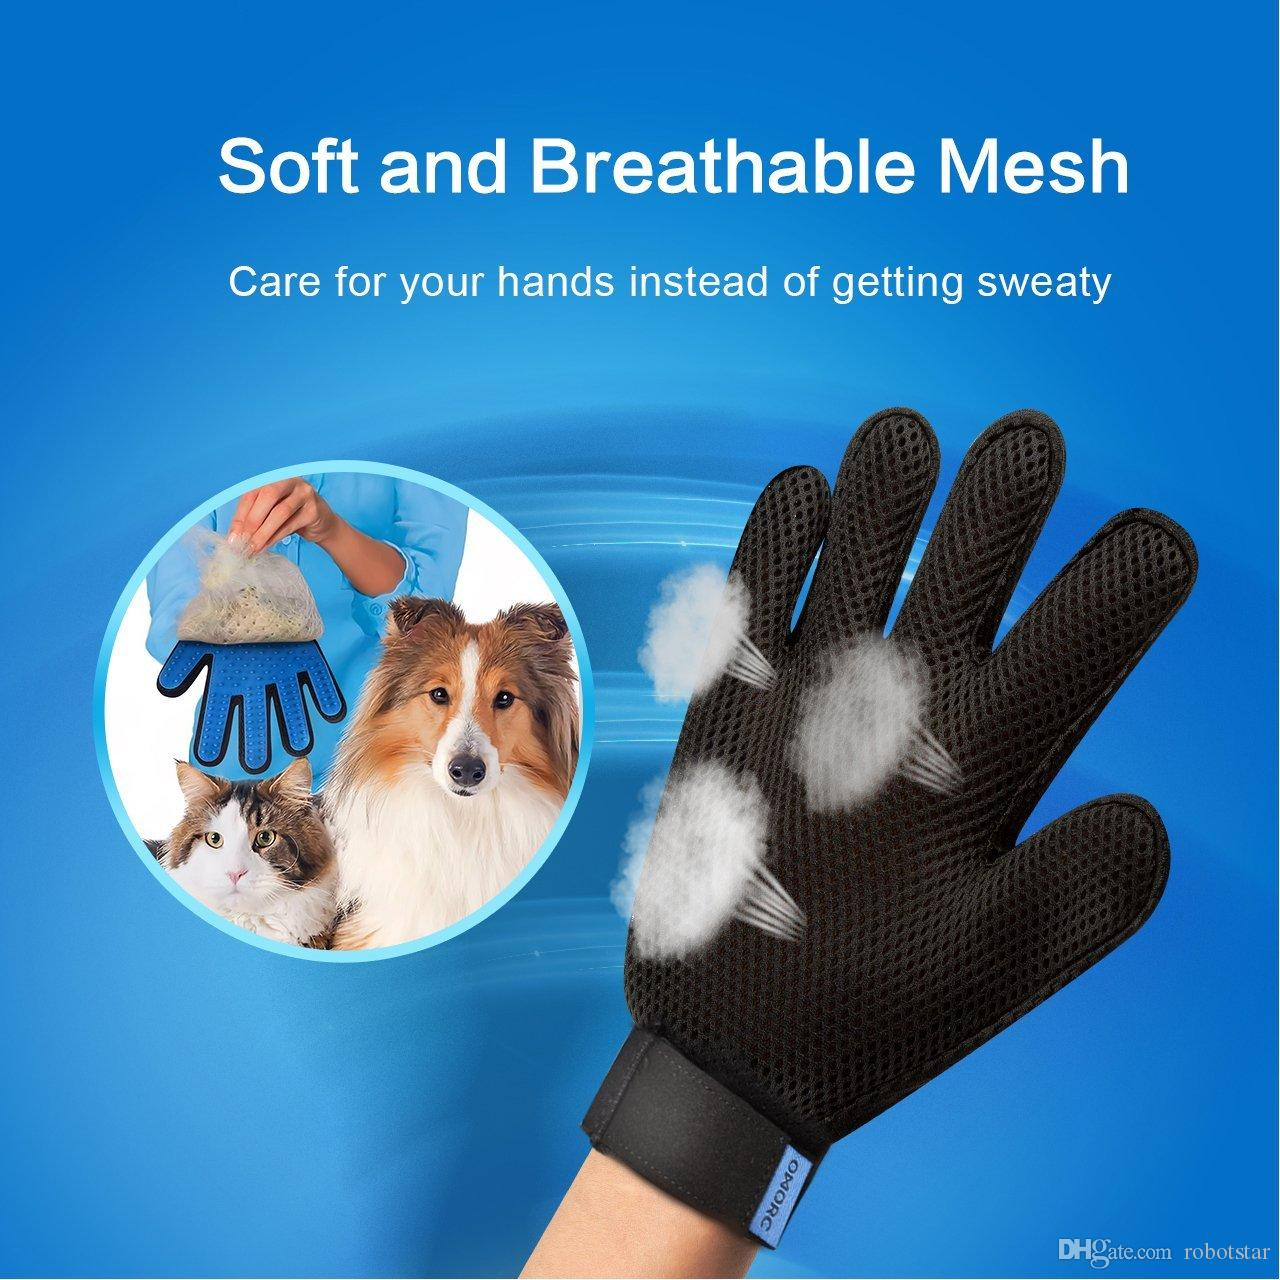 Pet Grooming Glove Gentle De-shedding Brush Glove Efficient Pet Hair Remover Mitt Massage Tool with Enhanced Five Finger Design Right hand